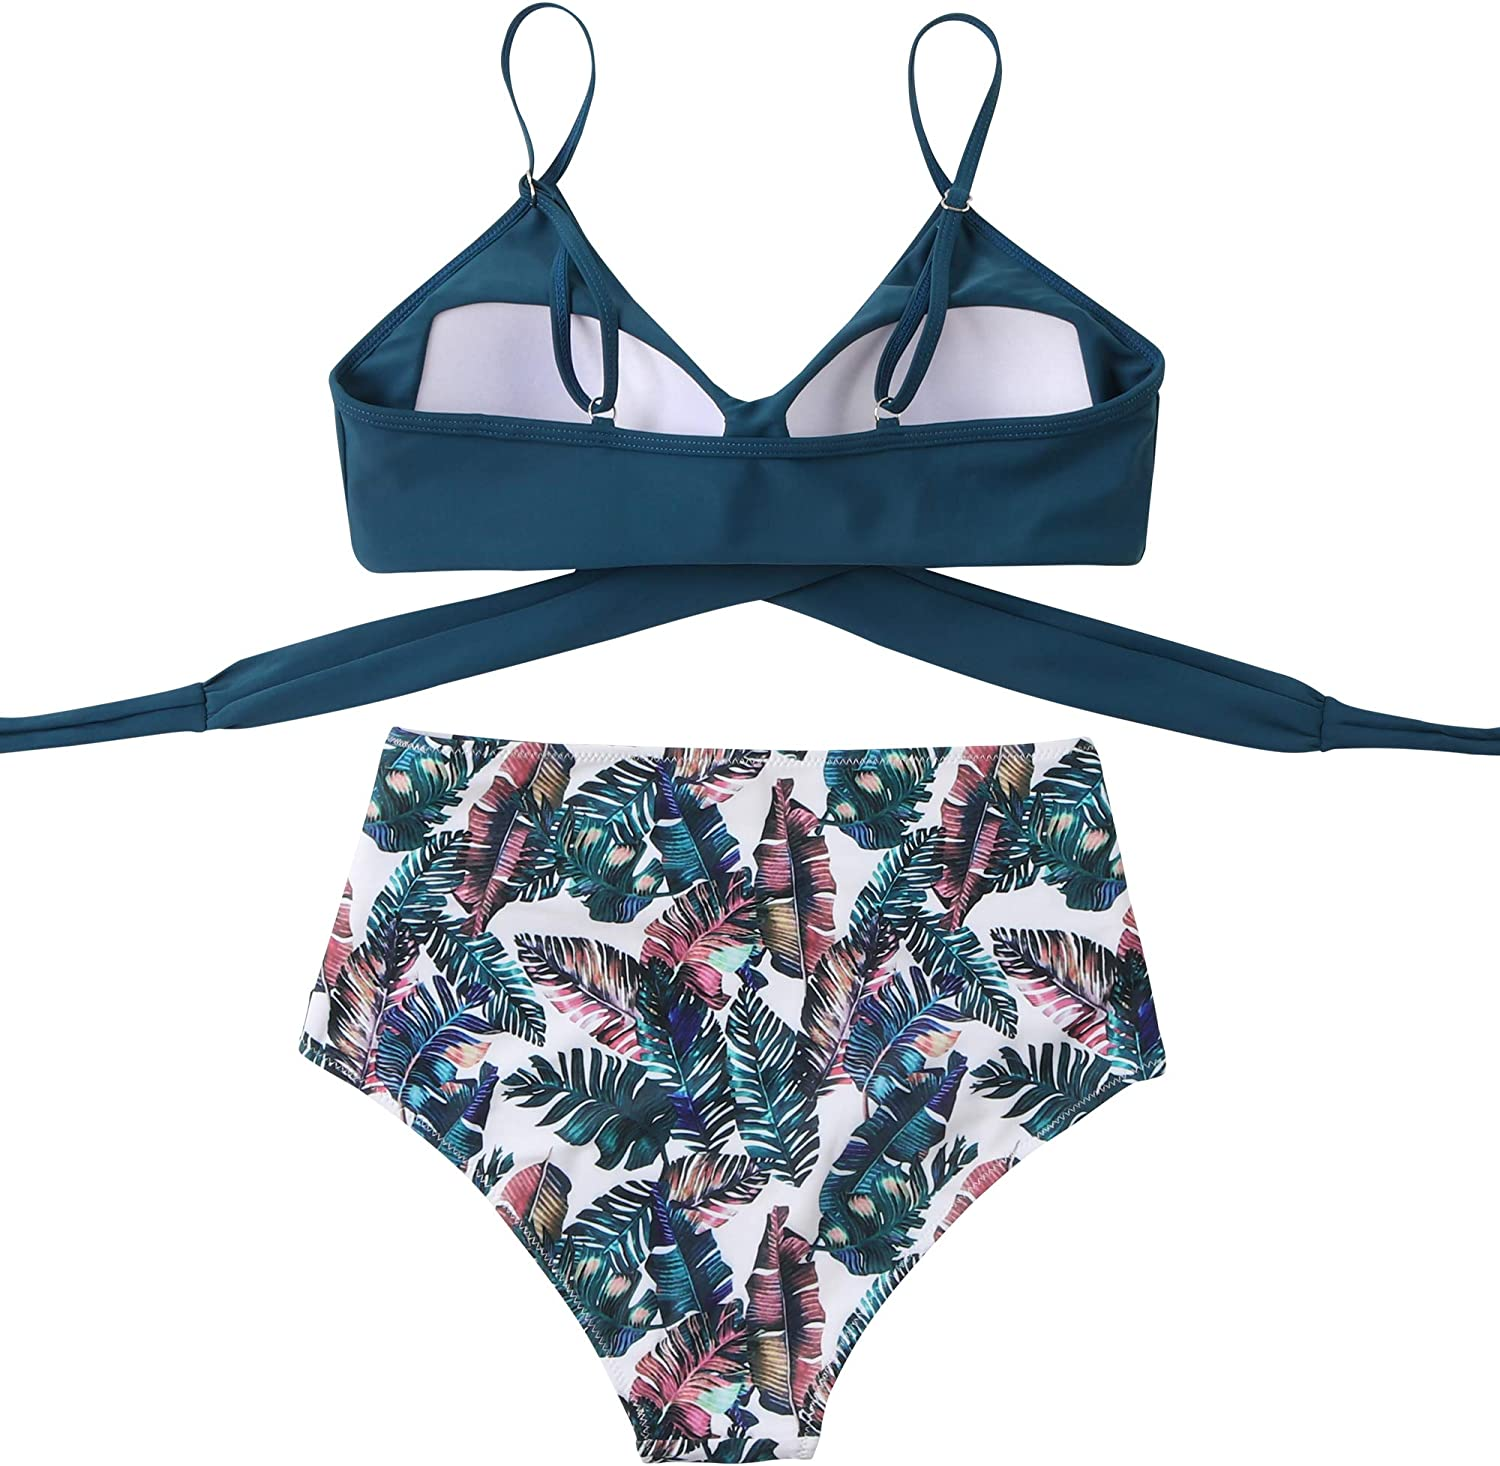 RUUHEE Women Criss Cross High Waisted String Floral Printed 2 Piece Bathing Suits